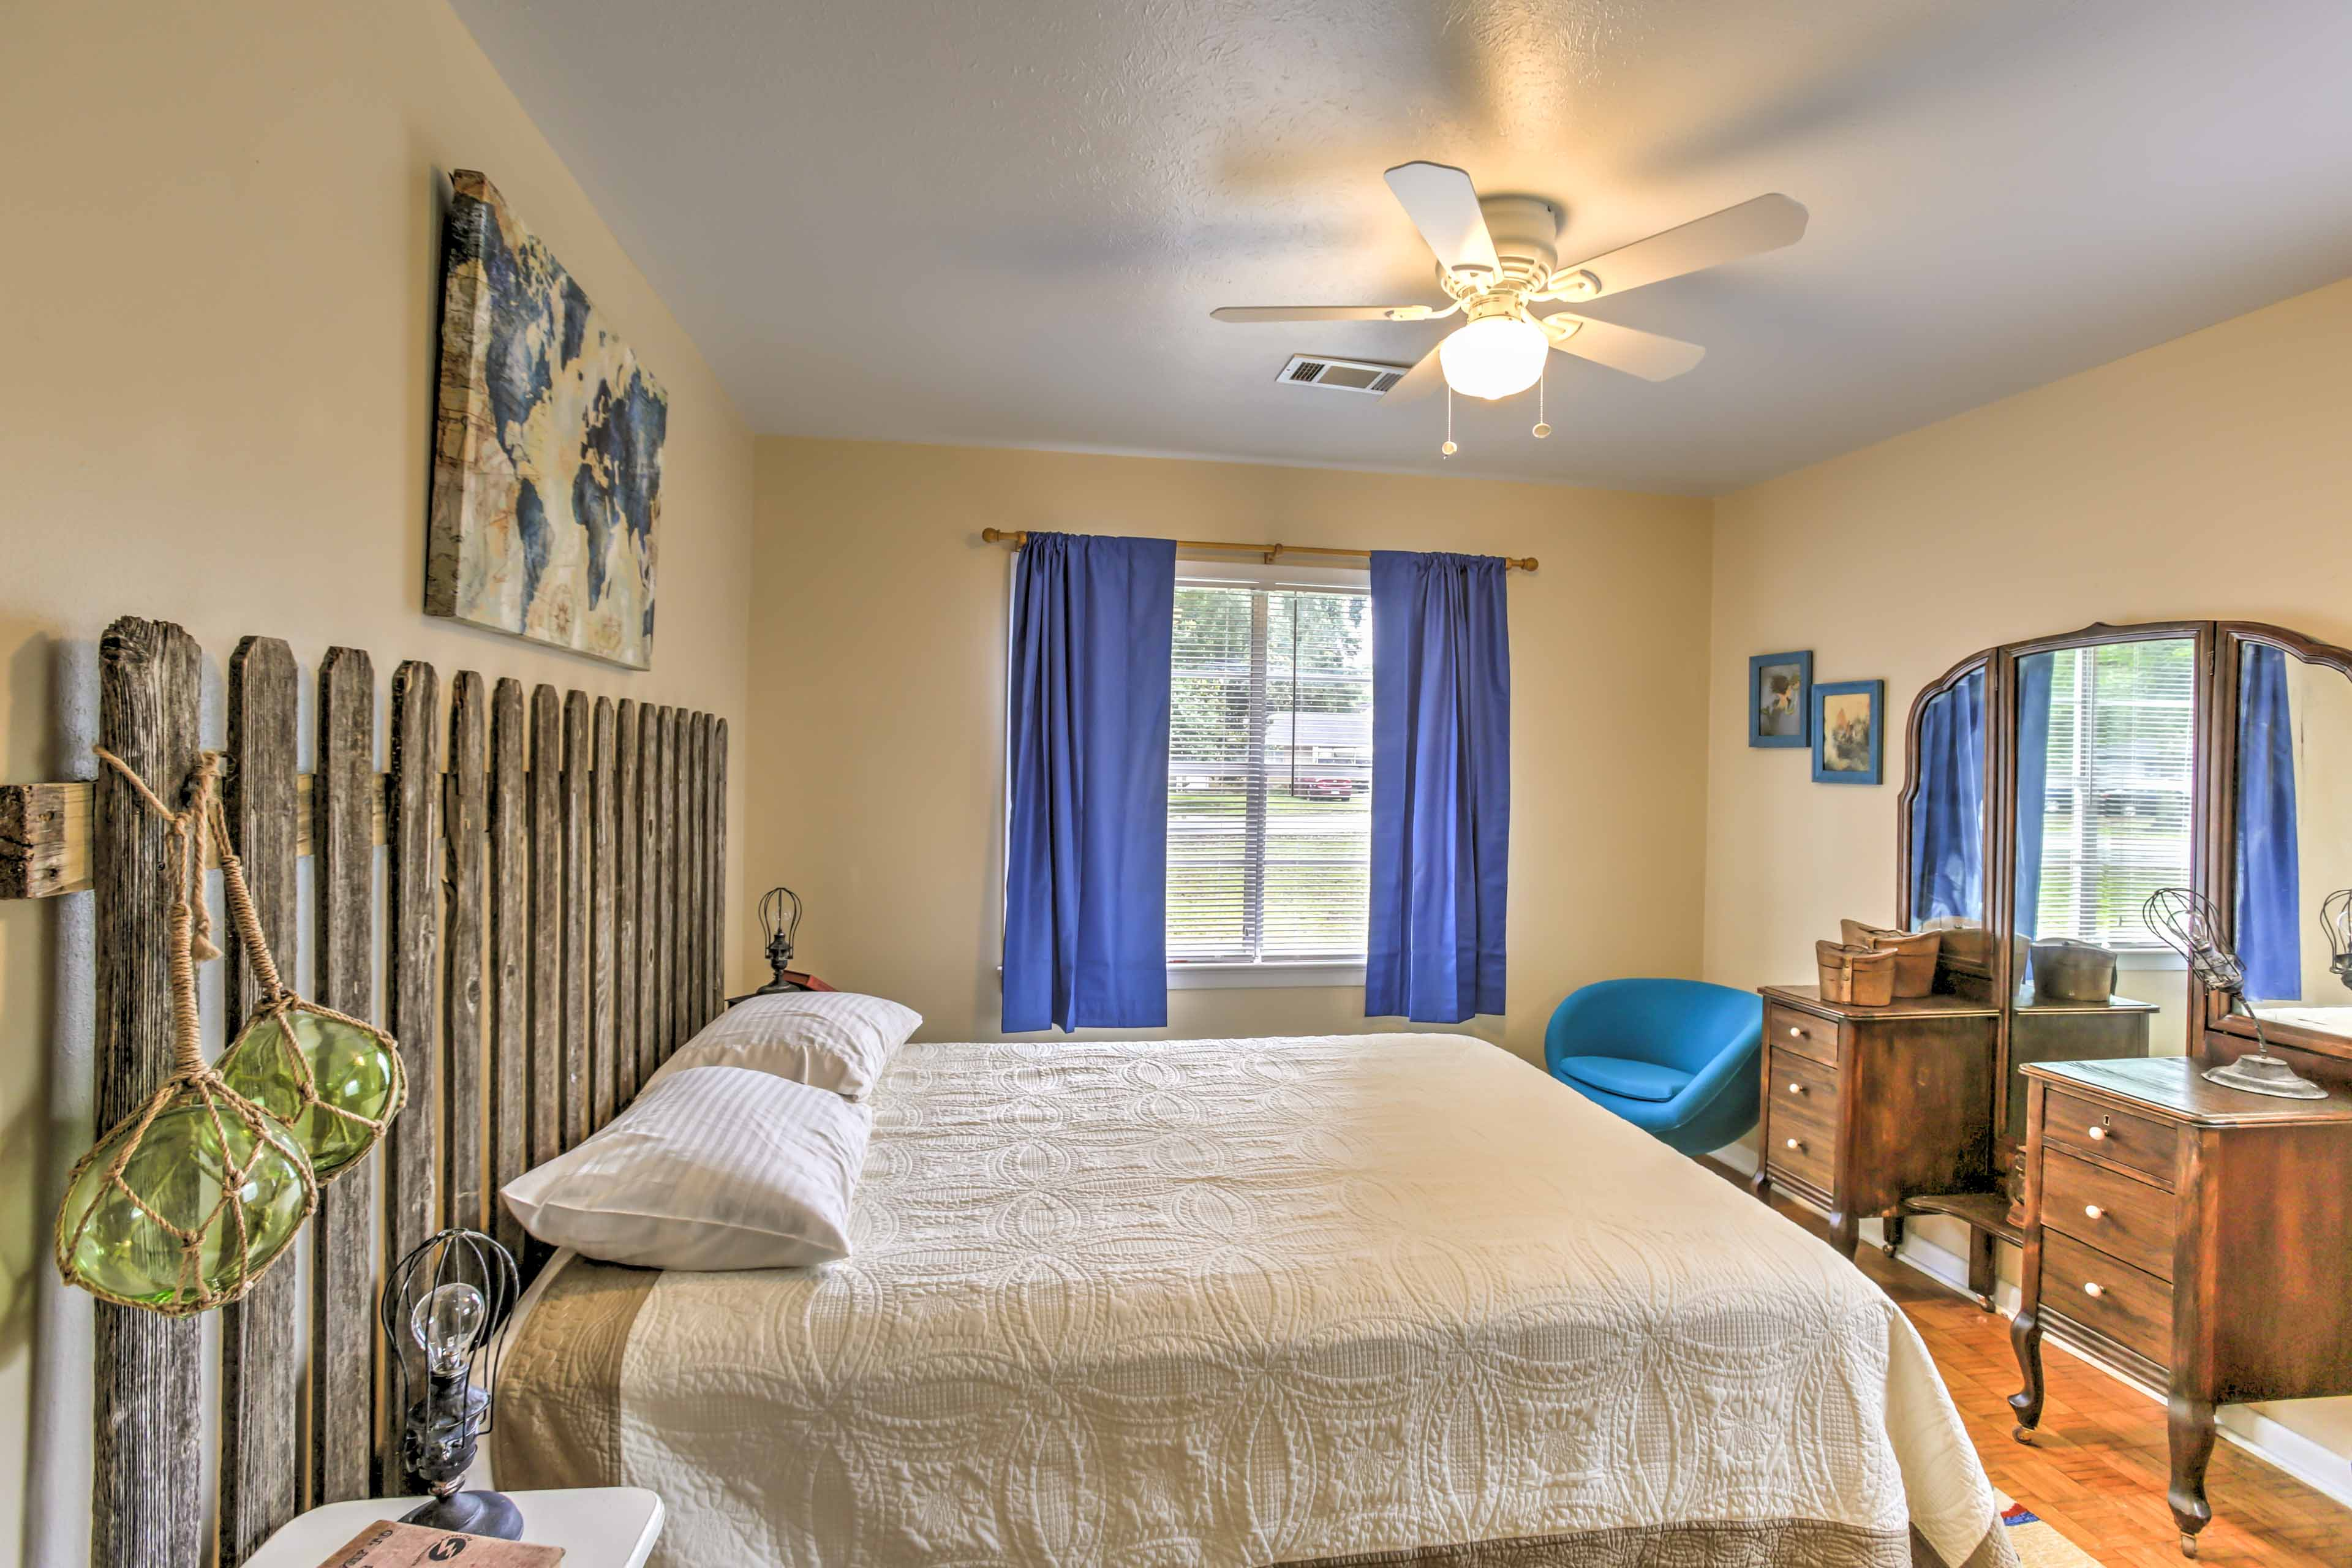 The second and third bedrooms come complete with queen-sized beds and soft linens for peaceful slumbers.